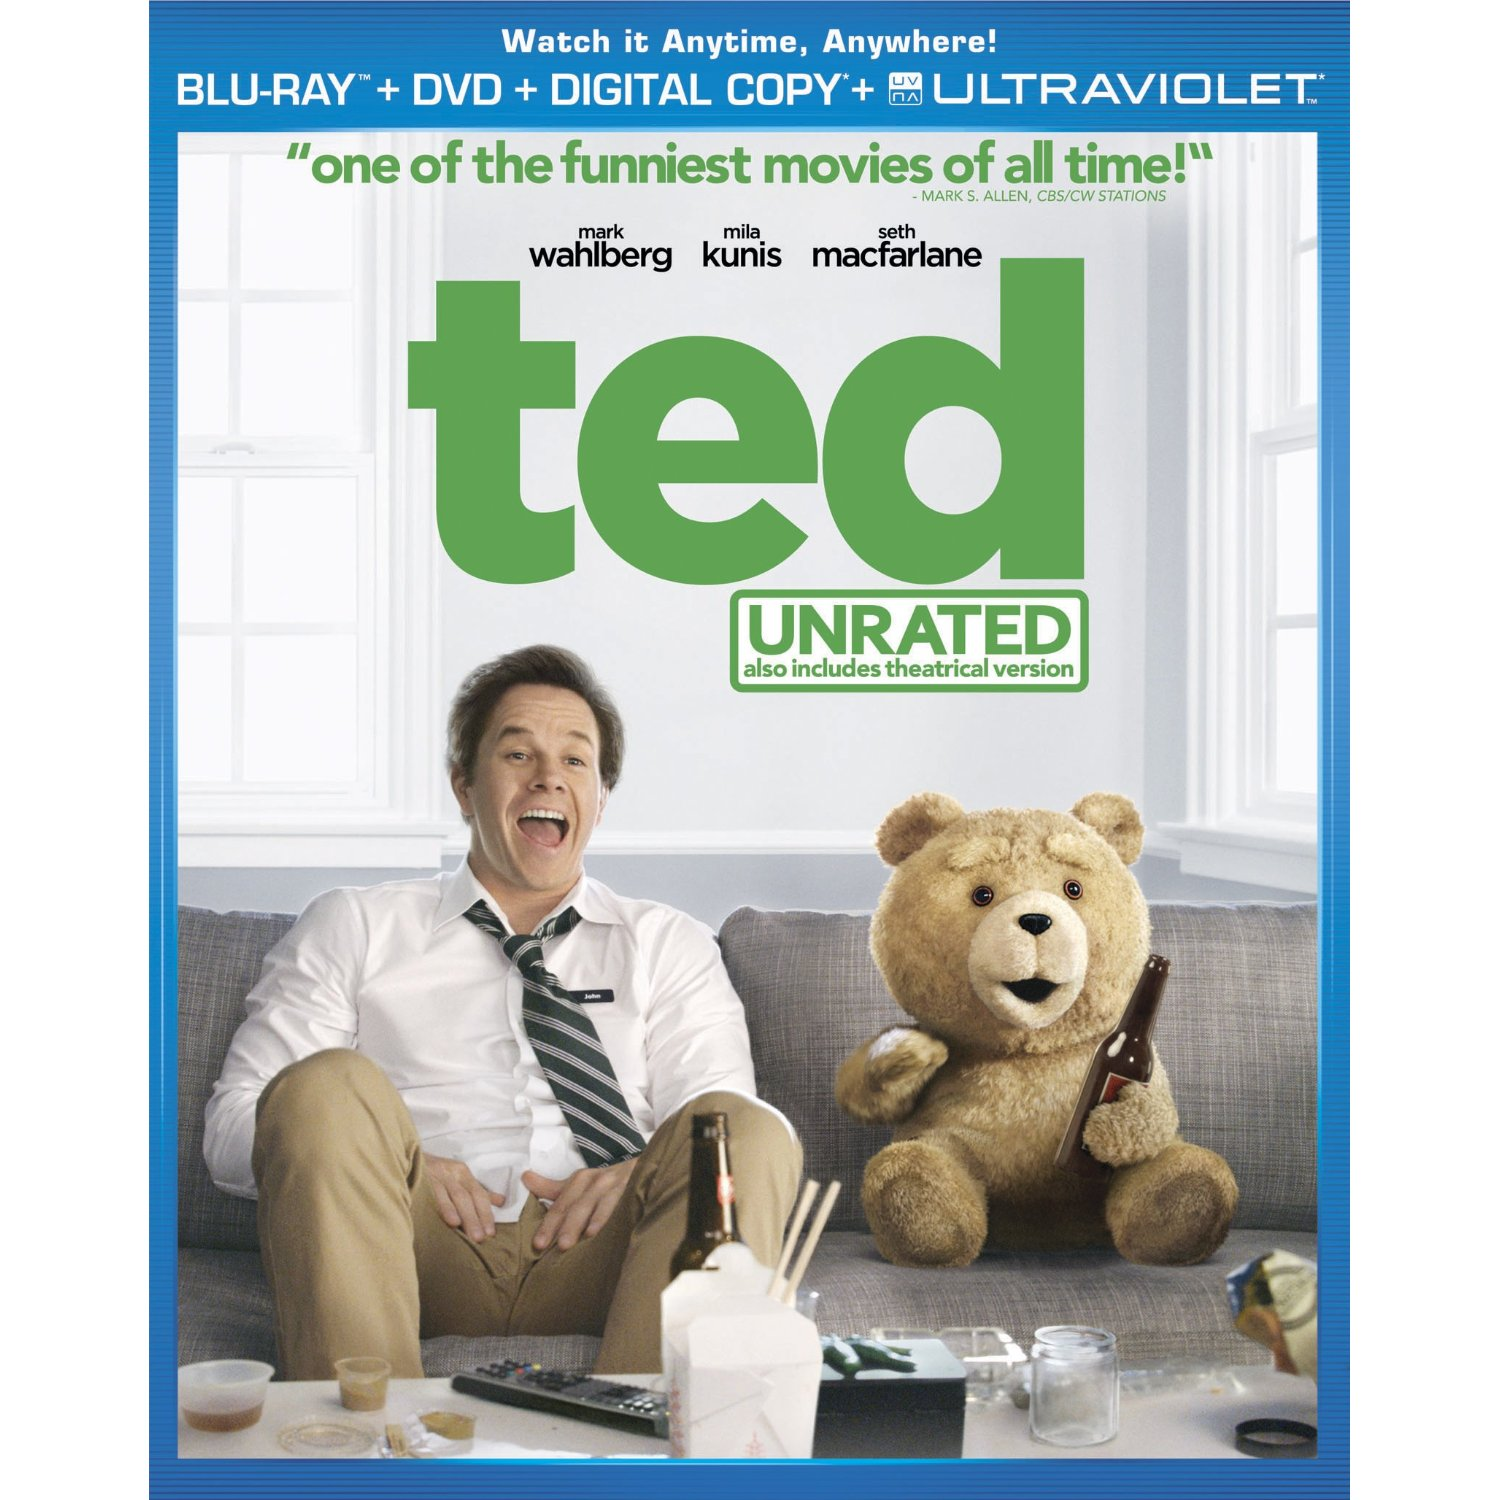 Journal seth macfarlane comedy ted coming to blu ray december 11th